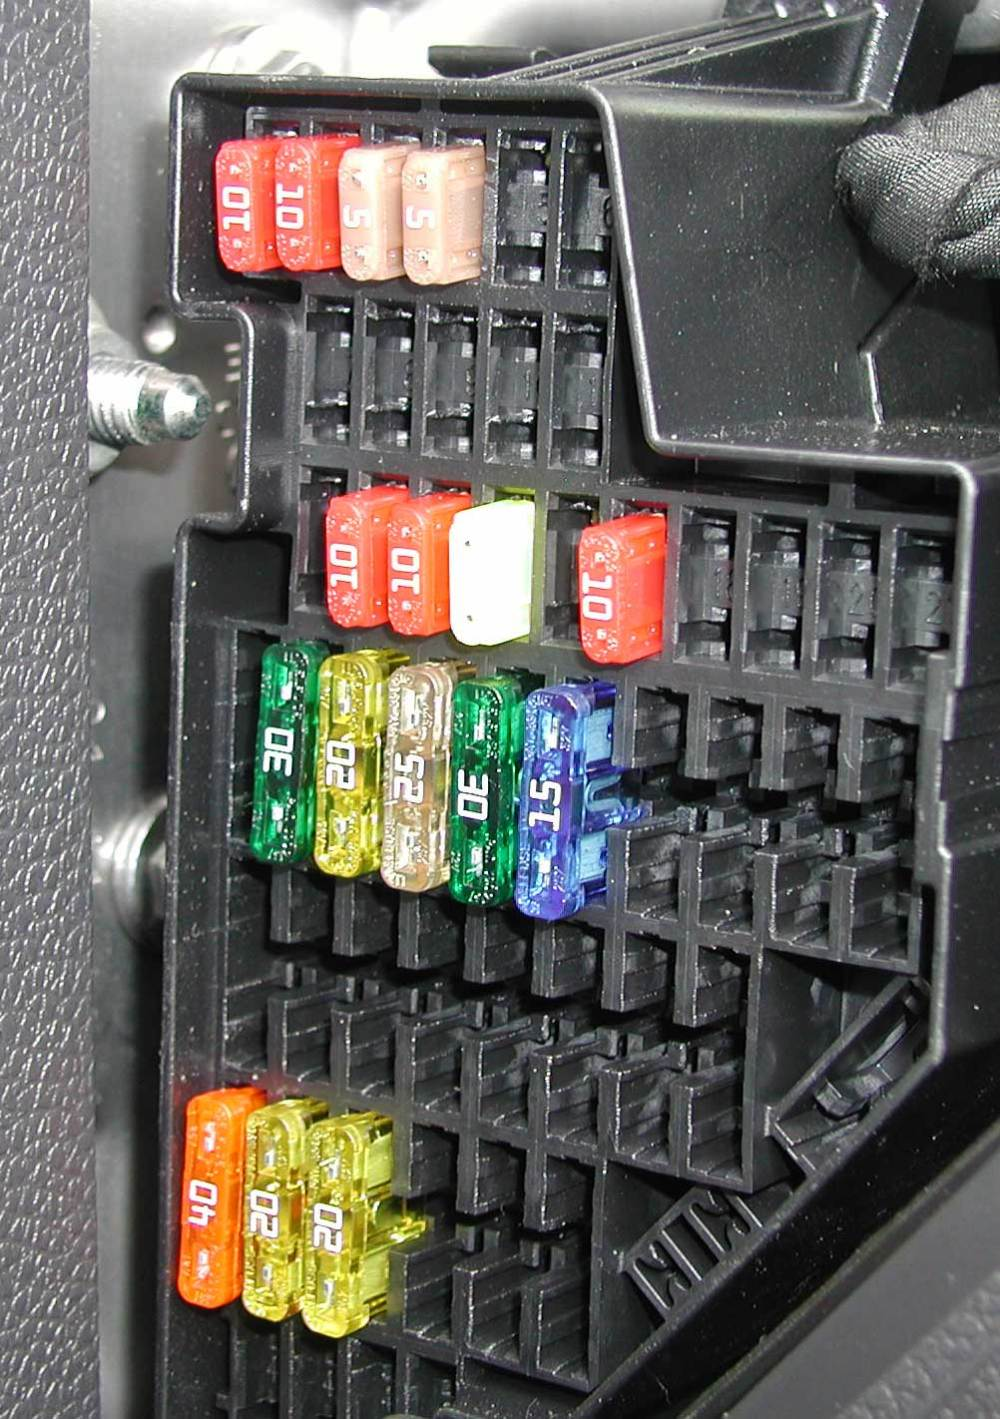 medium resolution of 2012 vw golf fuse box wiring diagram technic 2002 volkswagen golf fuse box diagram volkswagen golf fuse box layout